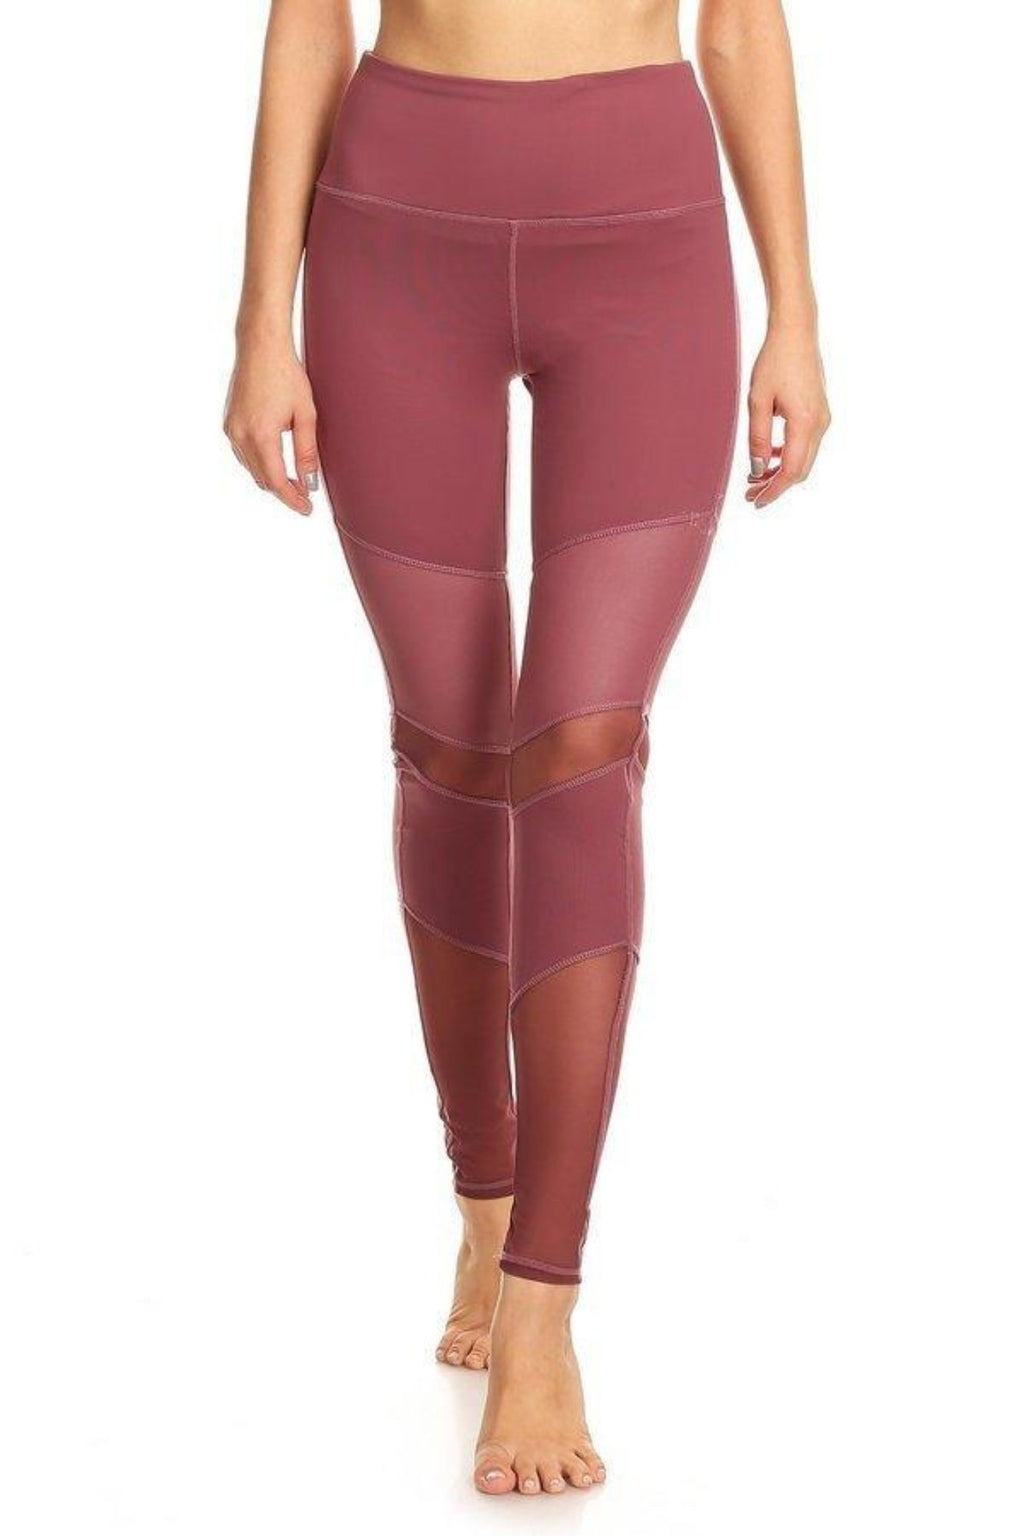 fair-shade - Peru Activewear Mesh Leggings- Mauve - Clothing